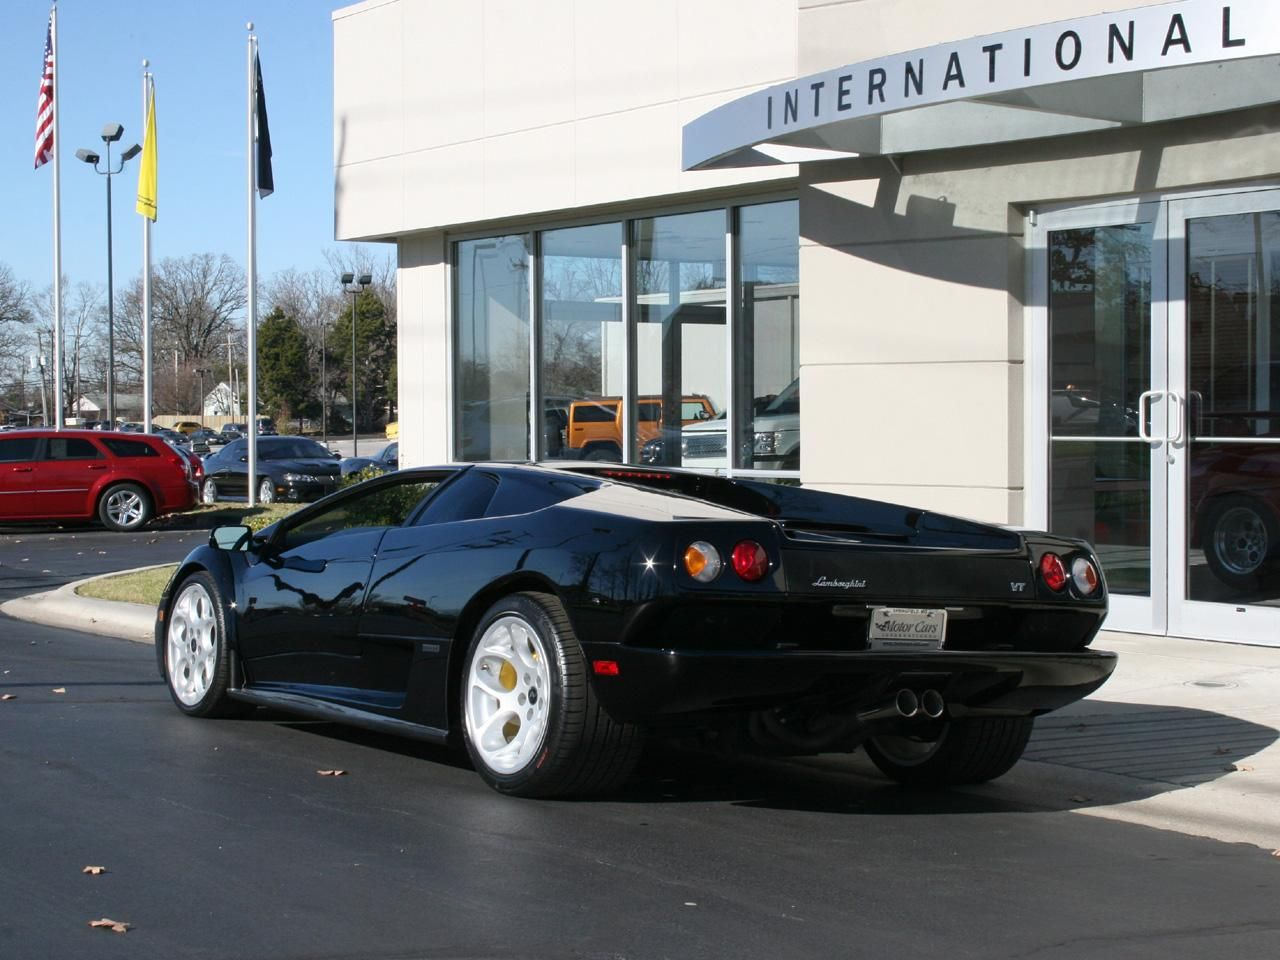 2001 Diablo 6.0 (With images)